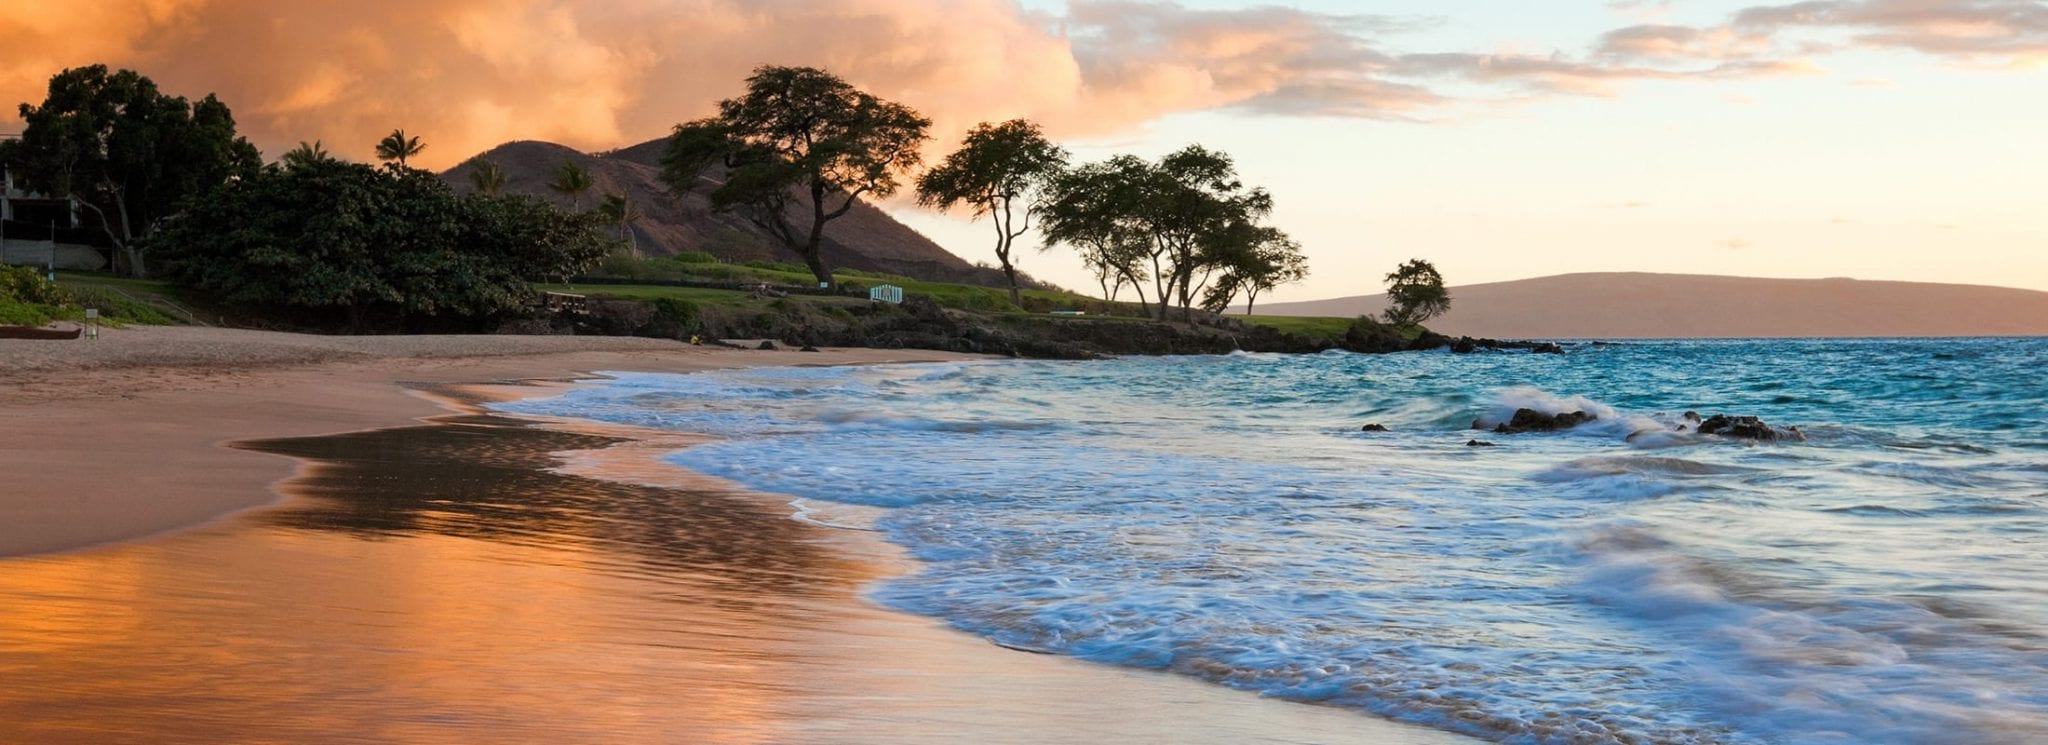 Hawaii Wedding Packages All Inclusive 3 Beach Destinations